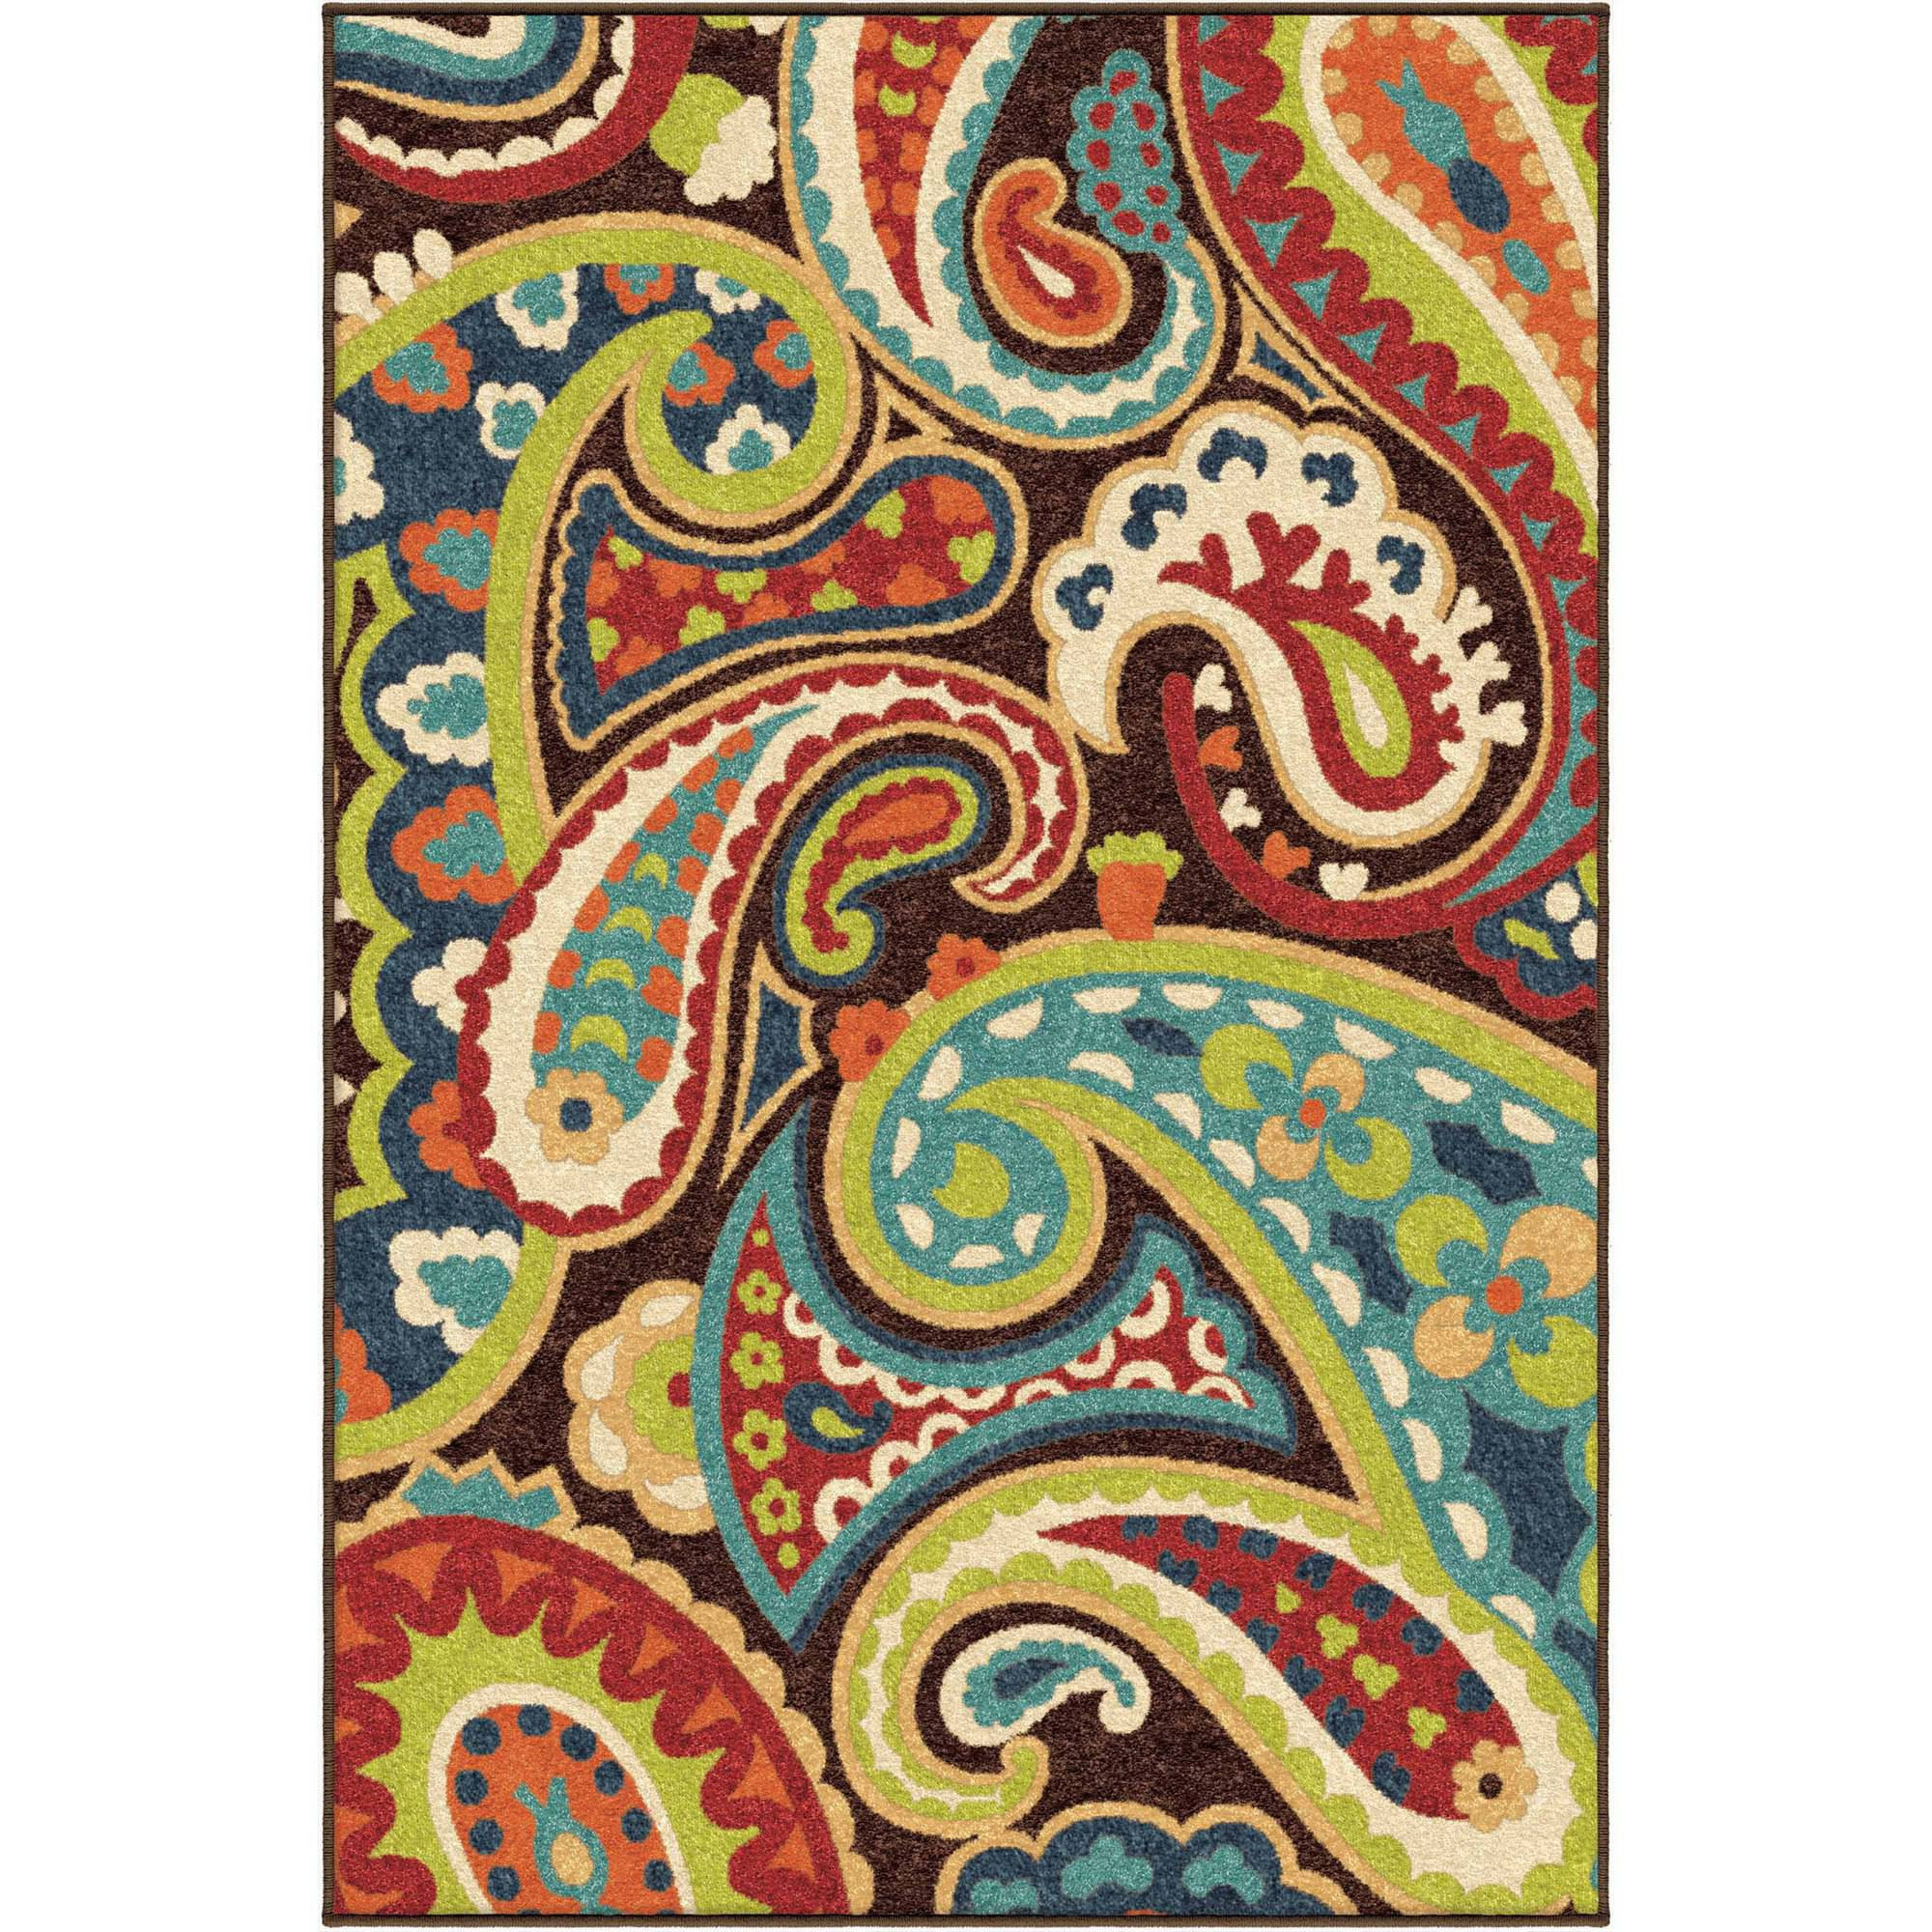 Orian Rugs Paisley Monteray Multi-Colored Area Rug - Walmart.com